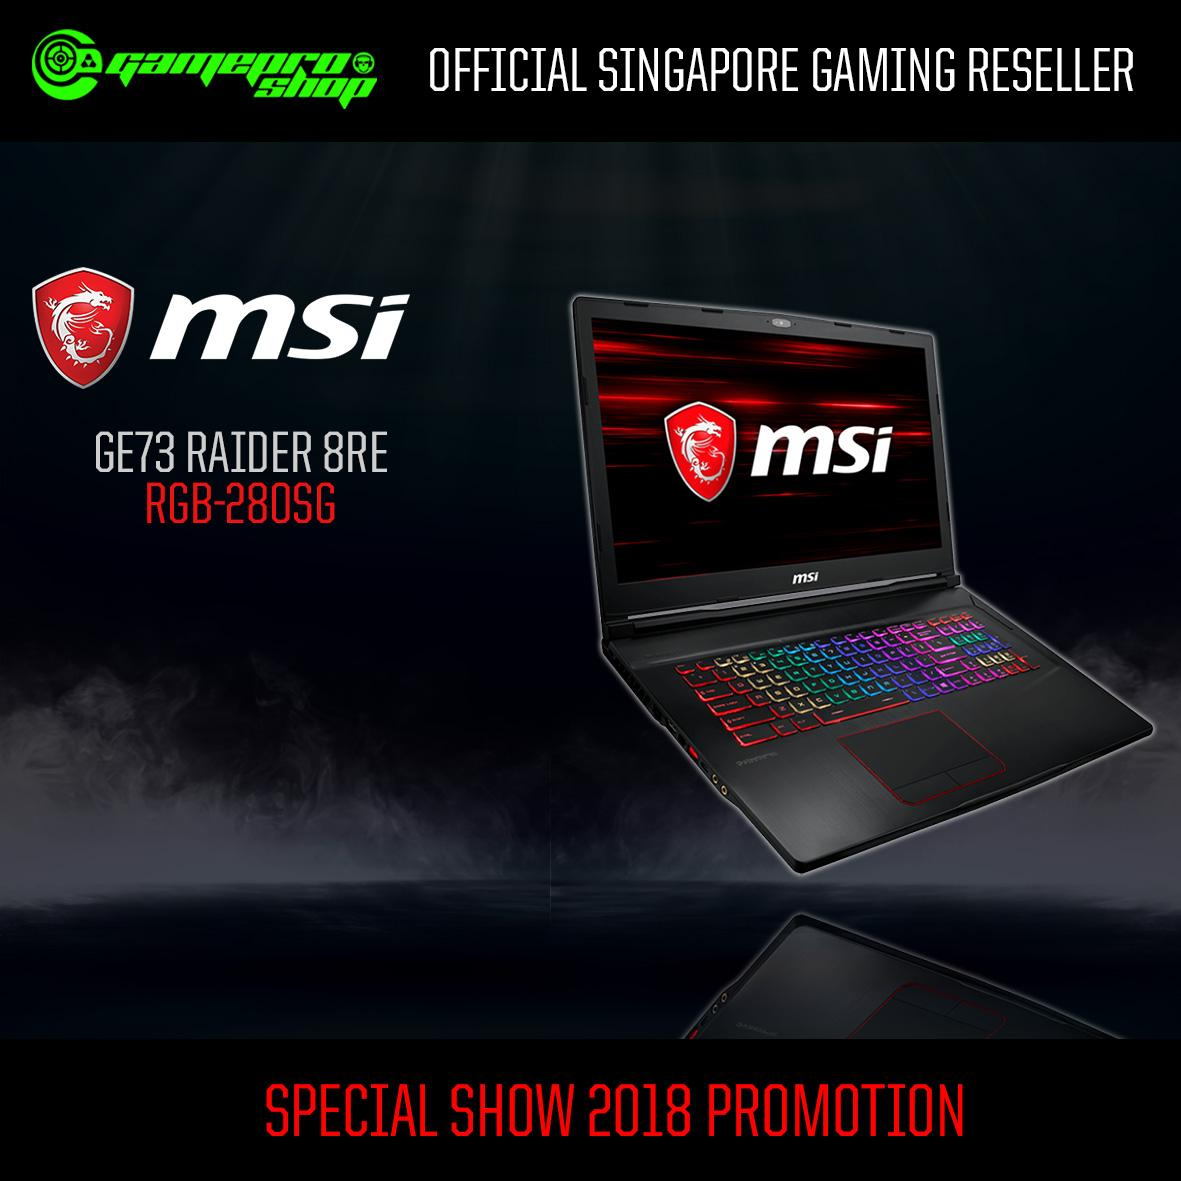 MSI GE73 Raider 8RE RGB-280SG (I7-8750H/16GB/256GB SSD/GTX1060)17.3″ with 120Hz Gaming Laptop *END OF MONTH PROMO*